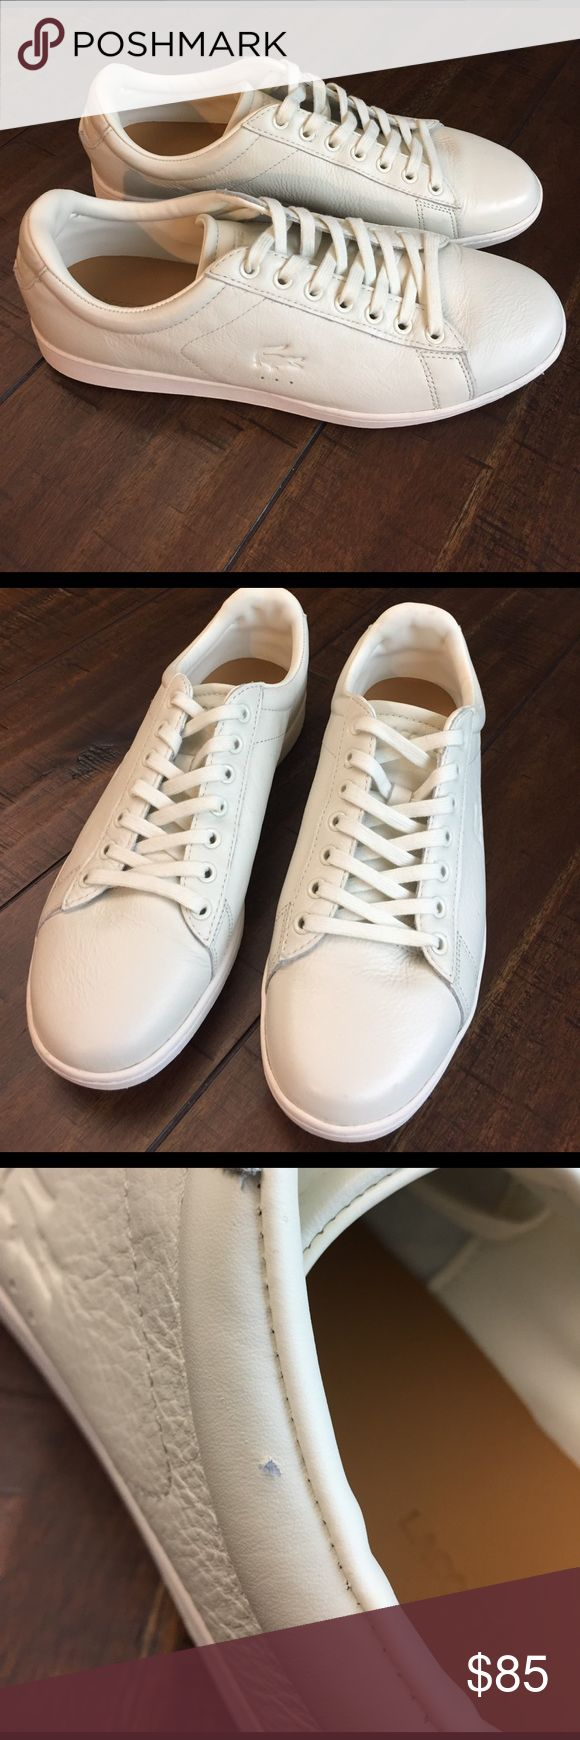 New Listing🐊Lacoste Carnaby Evo 2 Excellent condition off white sneakers that were worn once. Purchased from Nordstrom for well over $100. Two tiny nicks shown in last two pictures. What a steal these are! Lacoste Shoes Sneakers